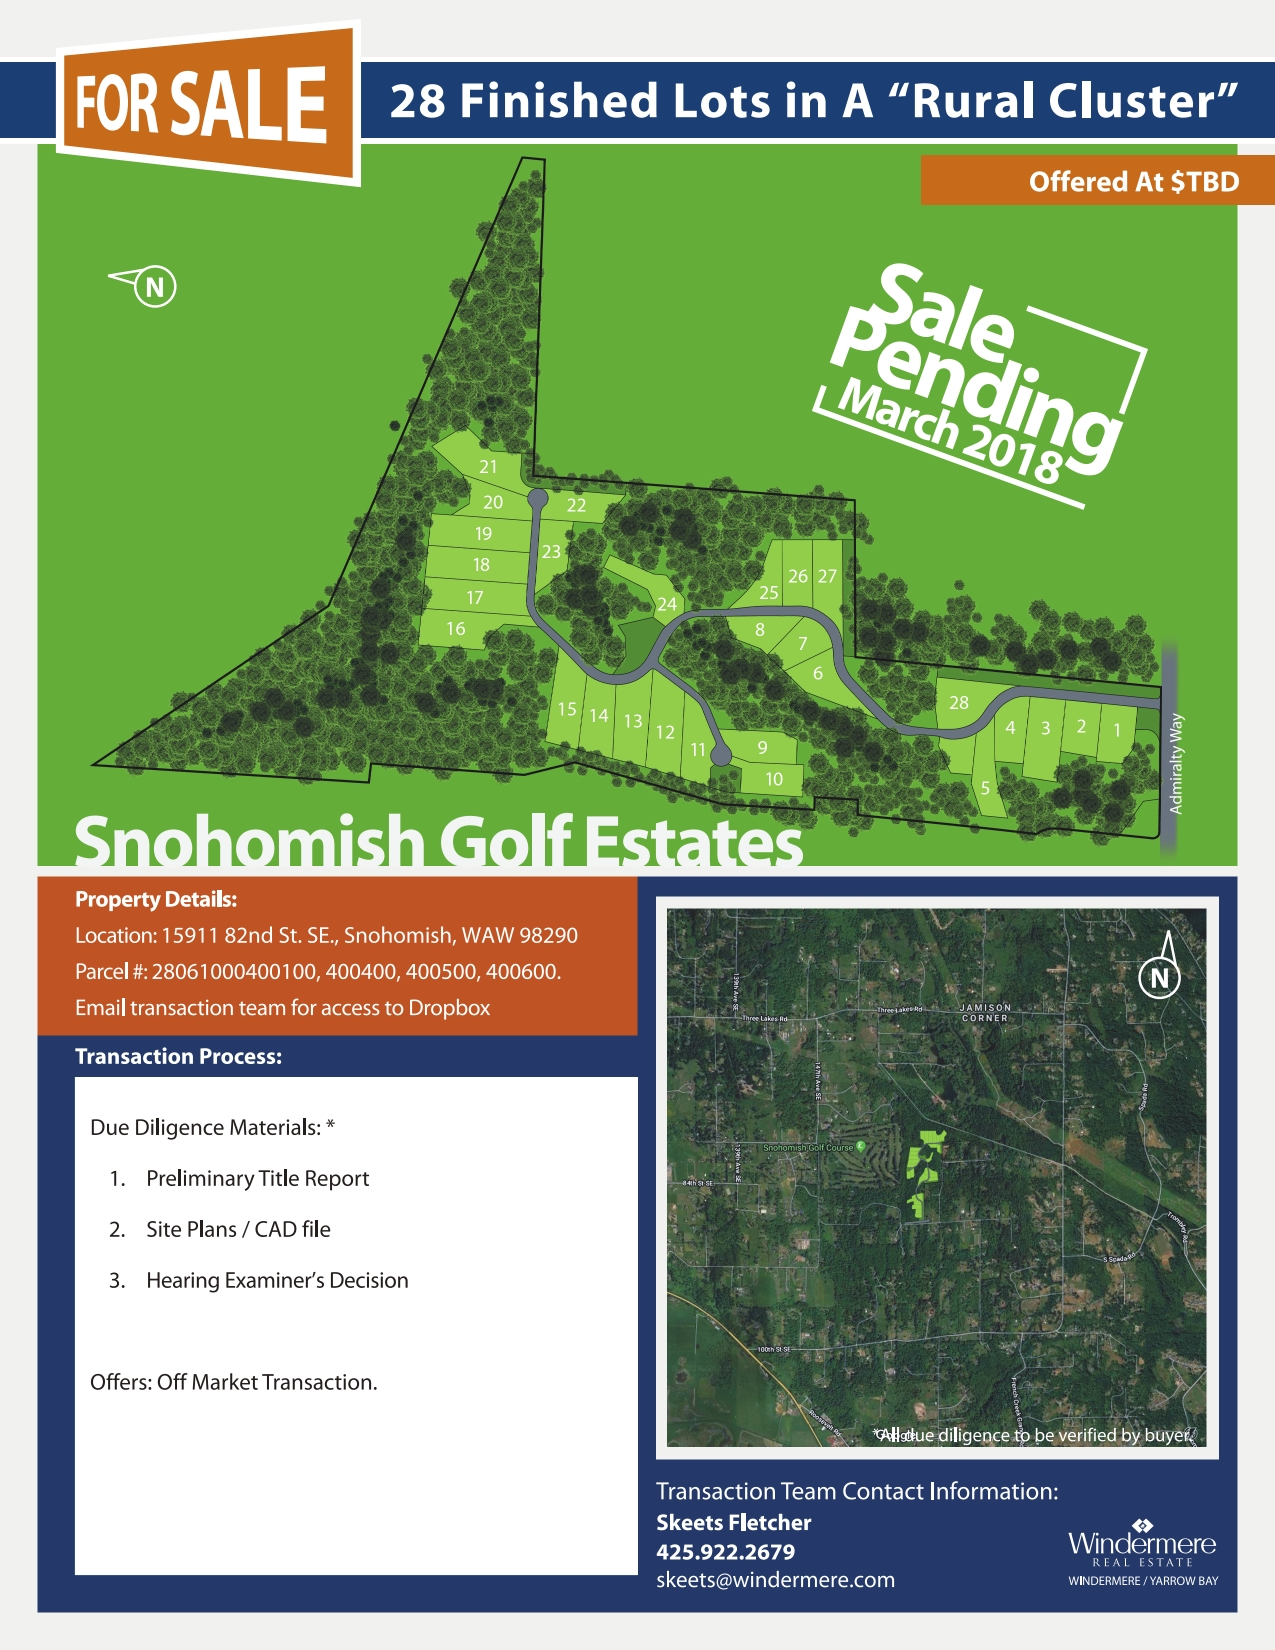 3.19.18 Snohomish Golf Mktg Flyer_001